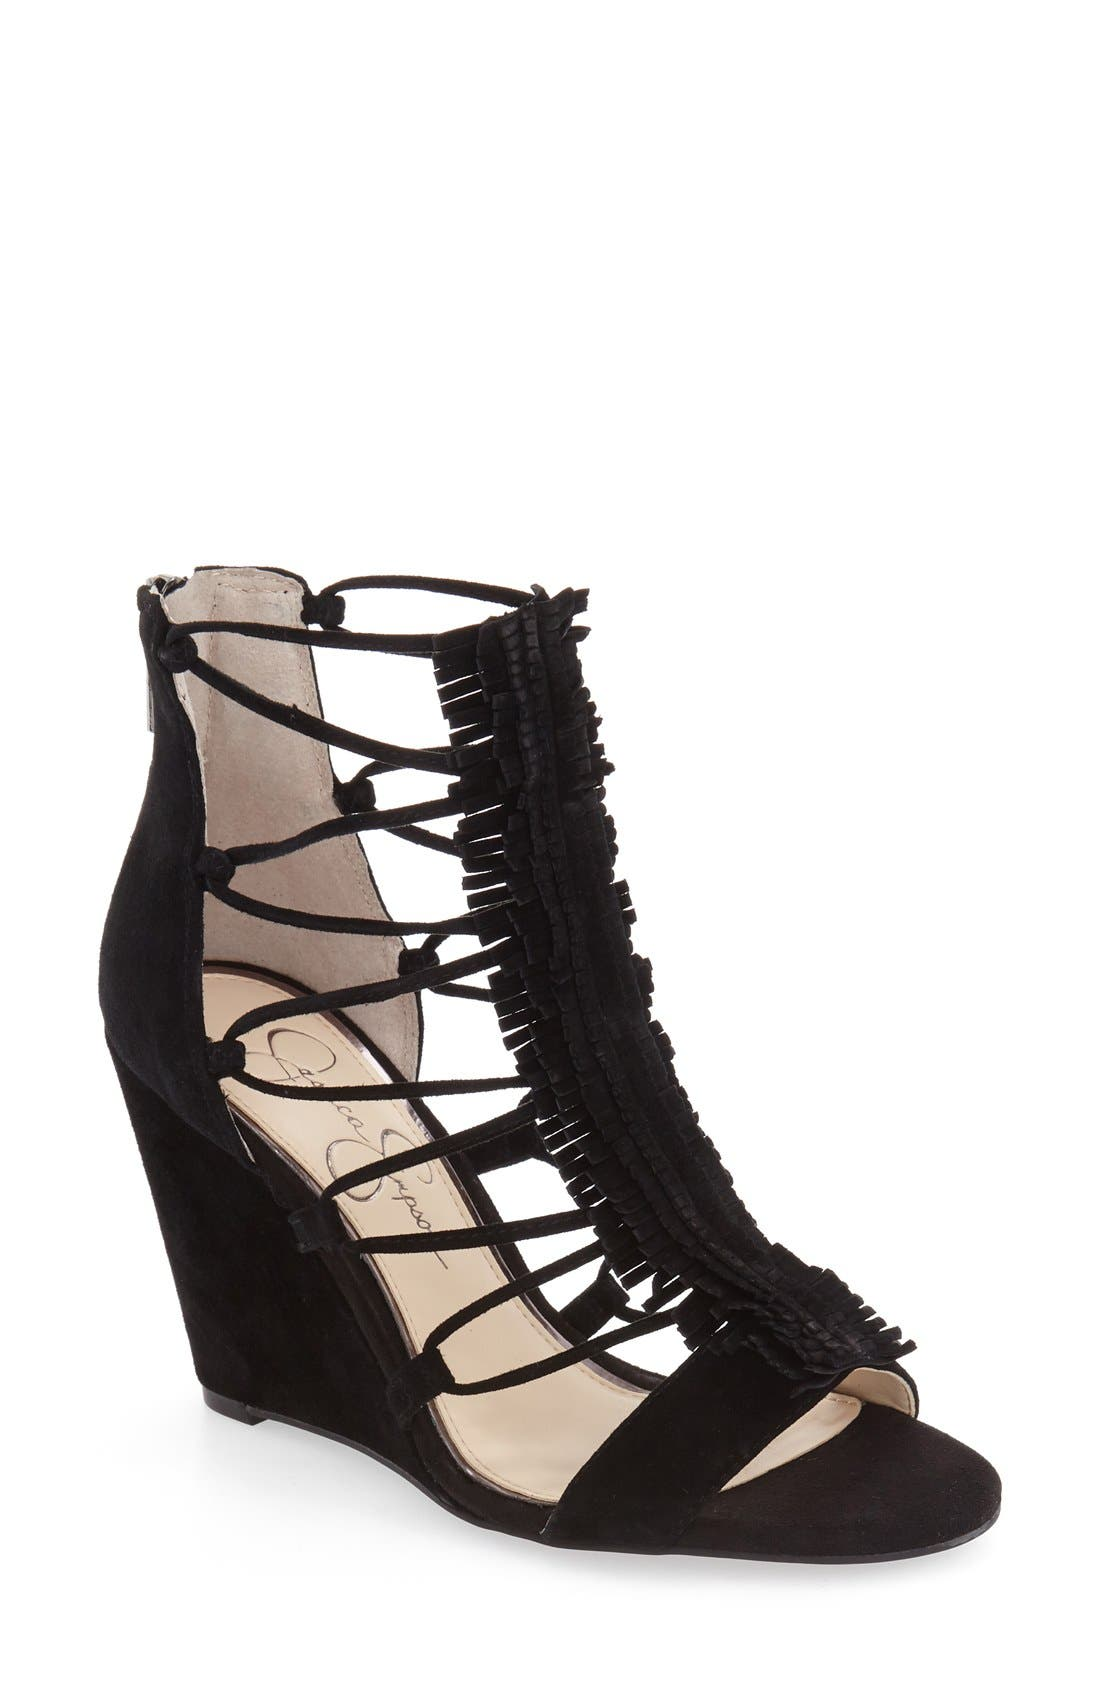 'Beccy' Wedge Sandal,                         Main,                         color, Black Suede